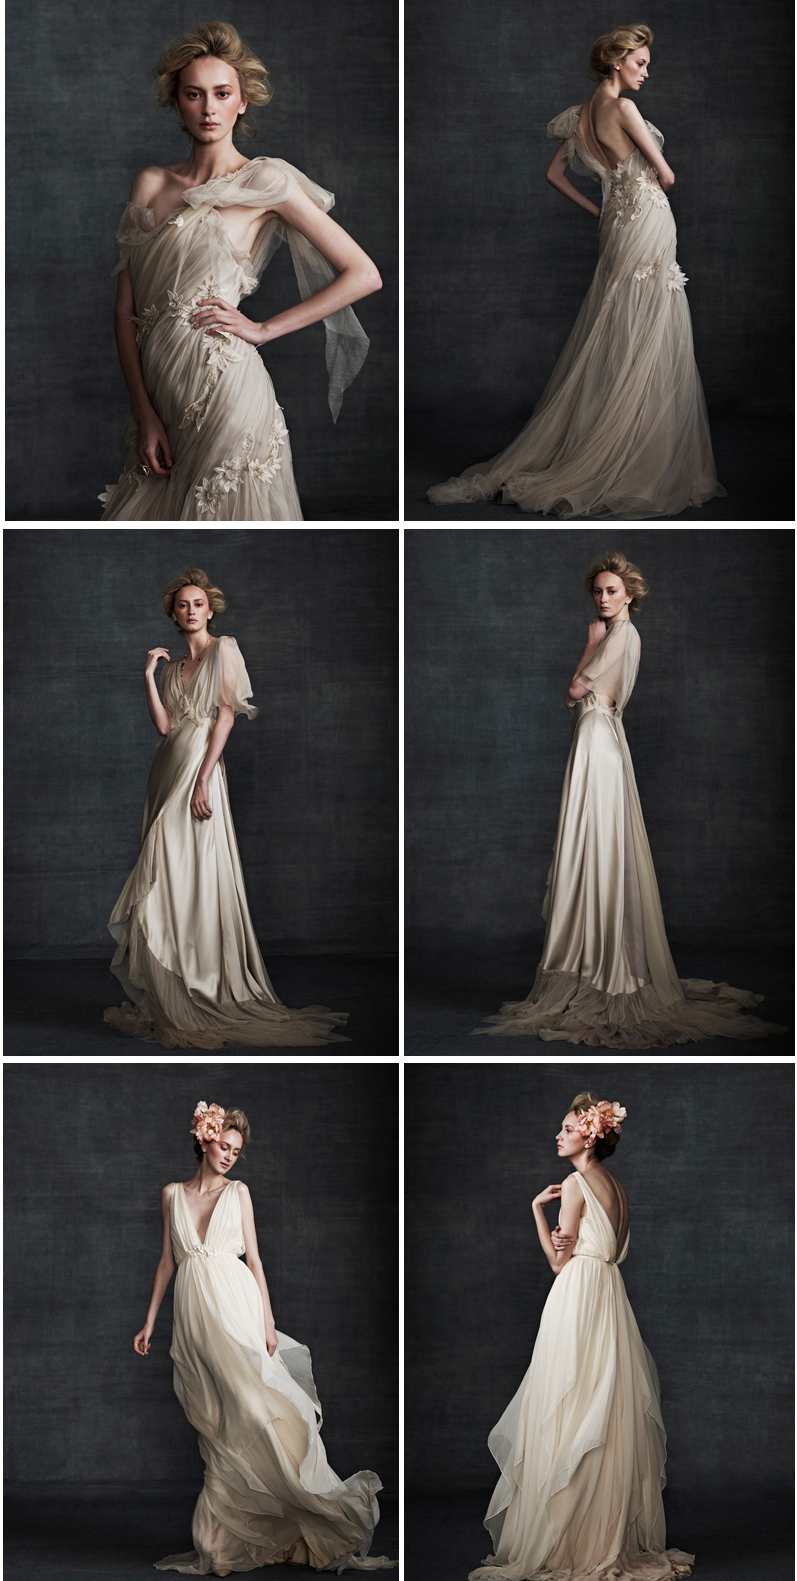 Elegant-wedding-gowns-samuele-couture-2013-wedding-dress-2.original